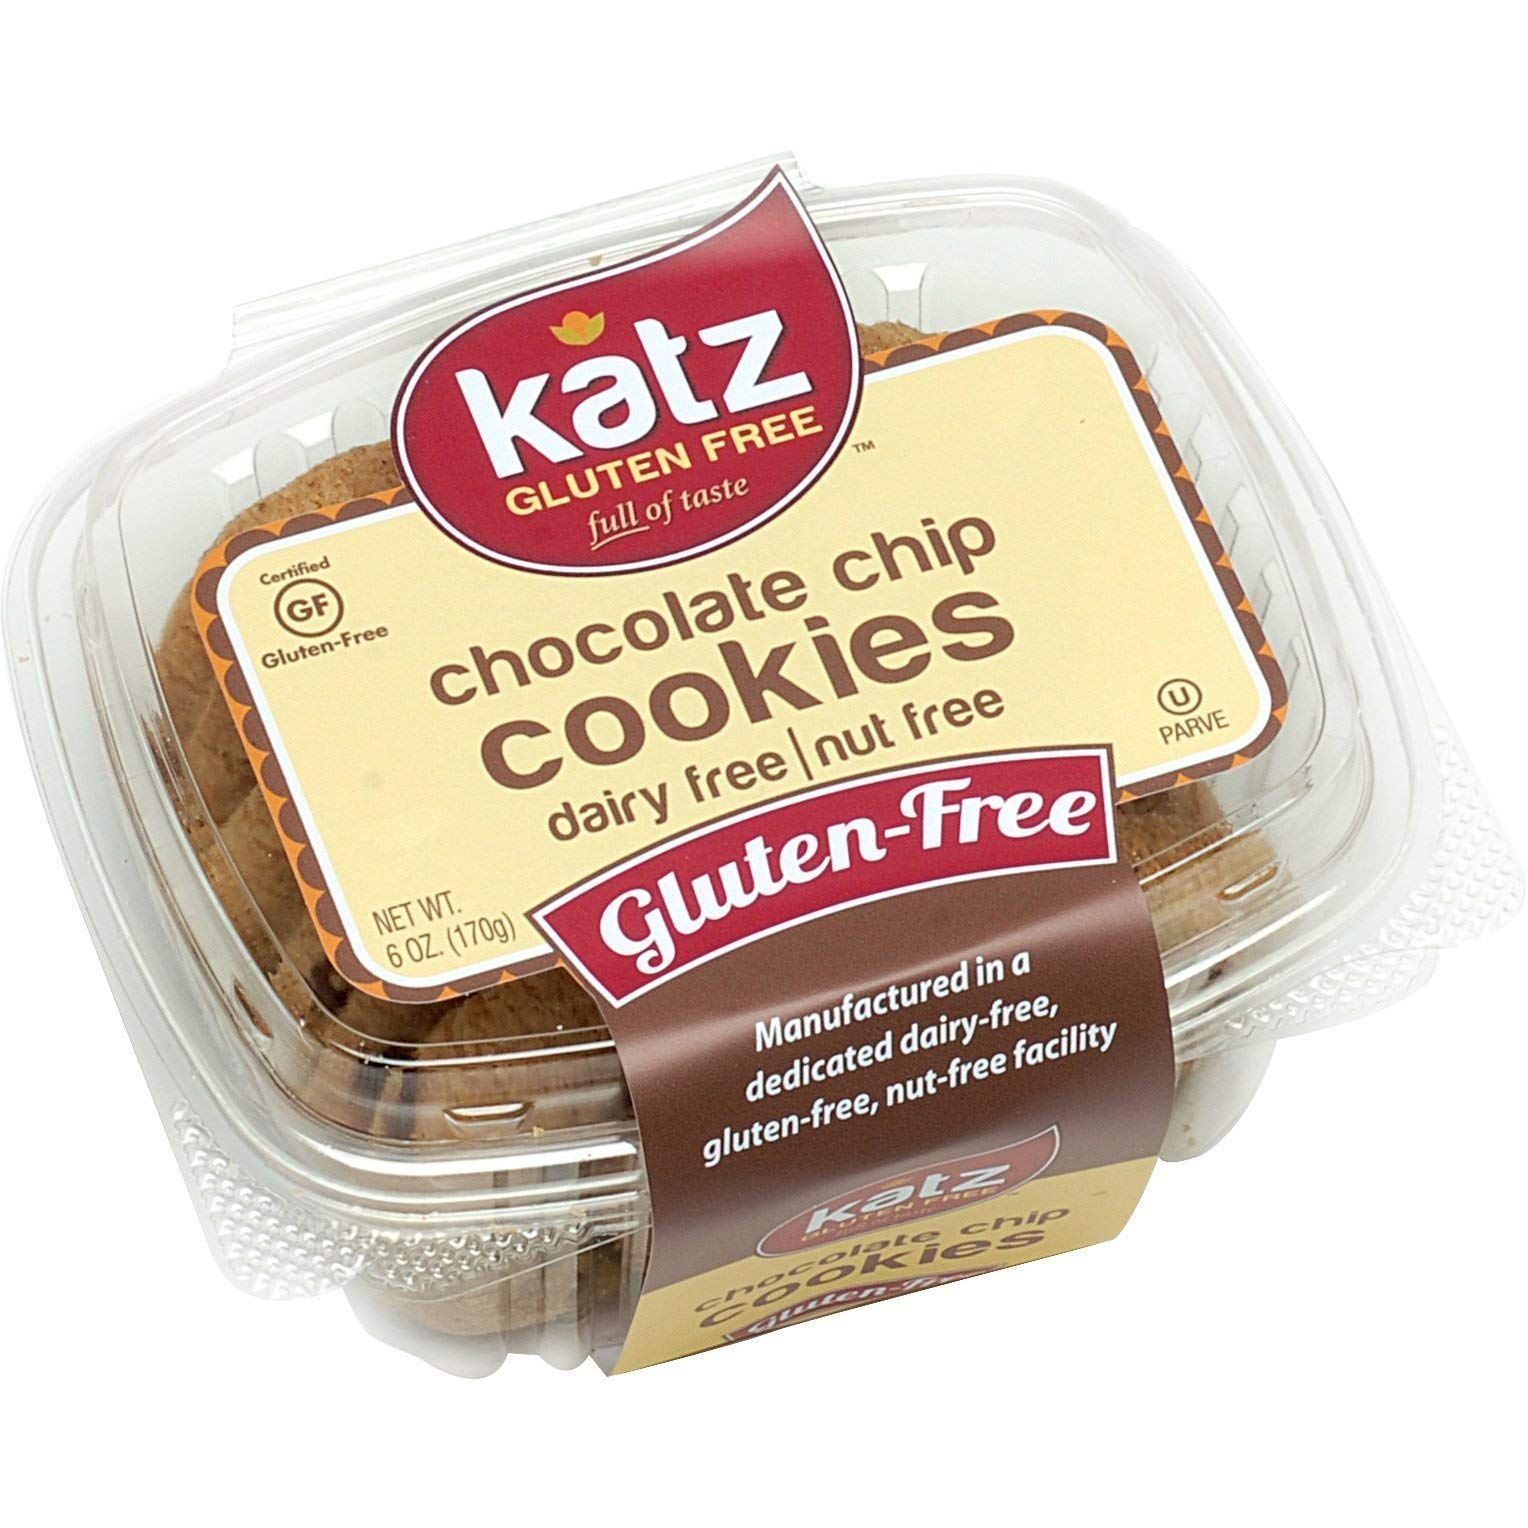 Katz Gluten Free Chocolate Chip Cookies | Dairy, Nut and Gluten Free | Kosher (6 Packs, 6 Ounce Each) by Katz Gluten Free